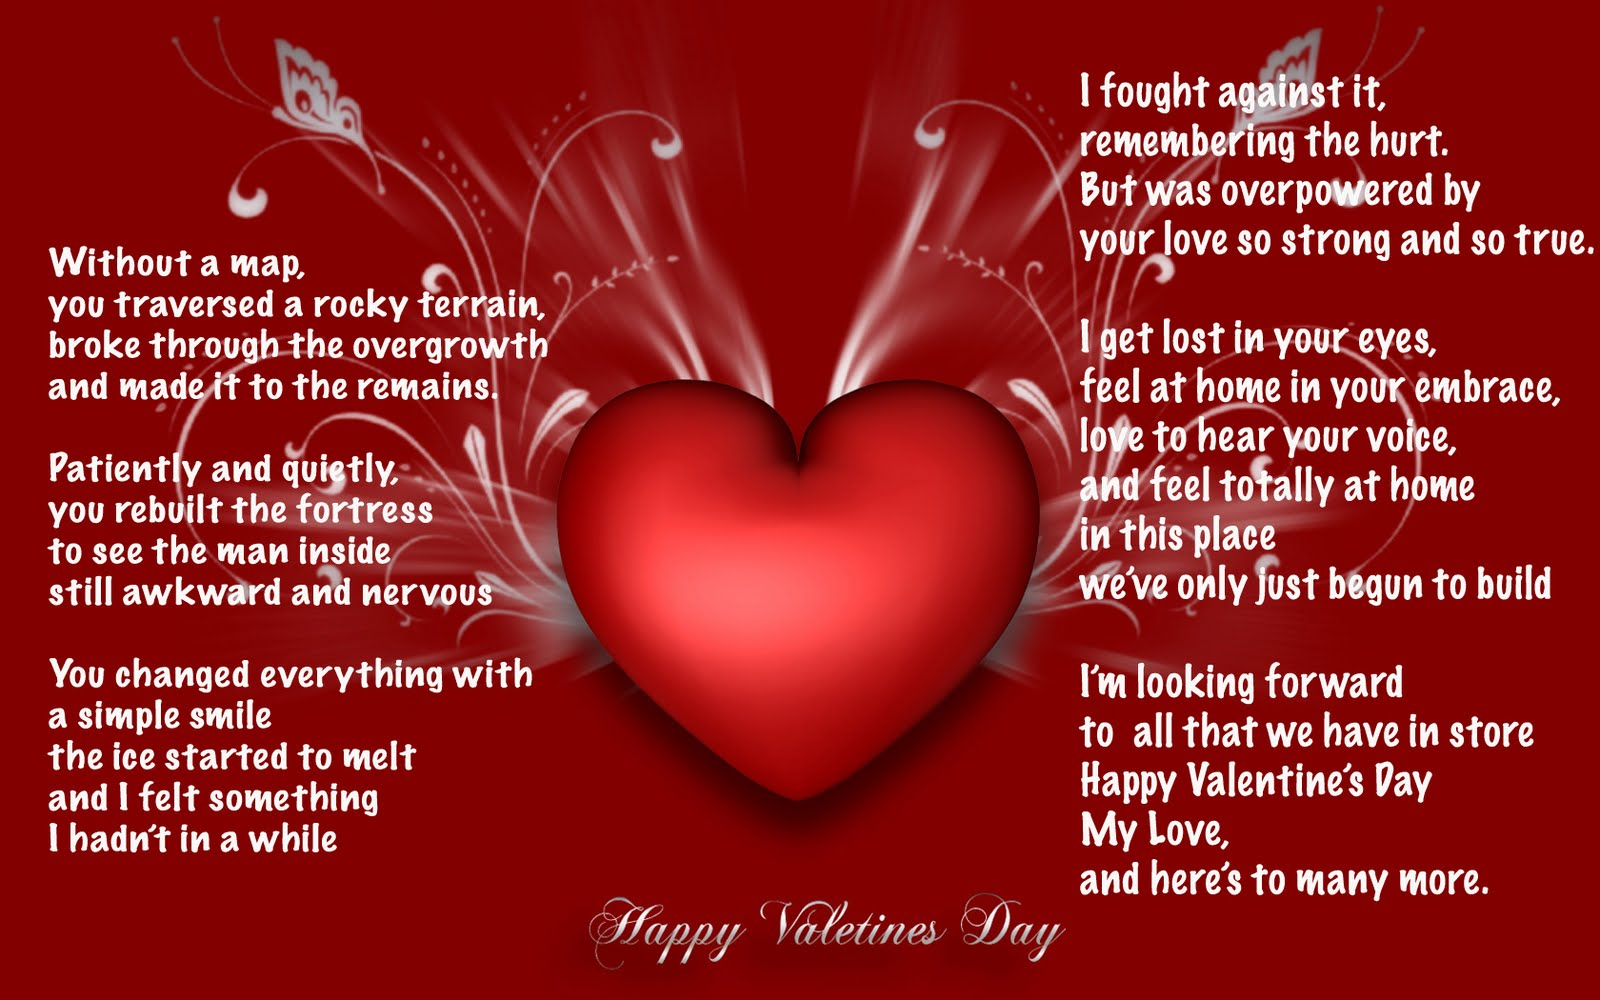 valentine's day quotes - photo #6